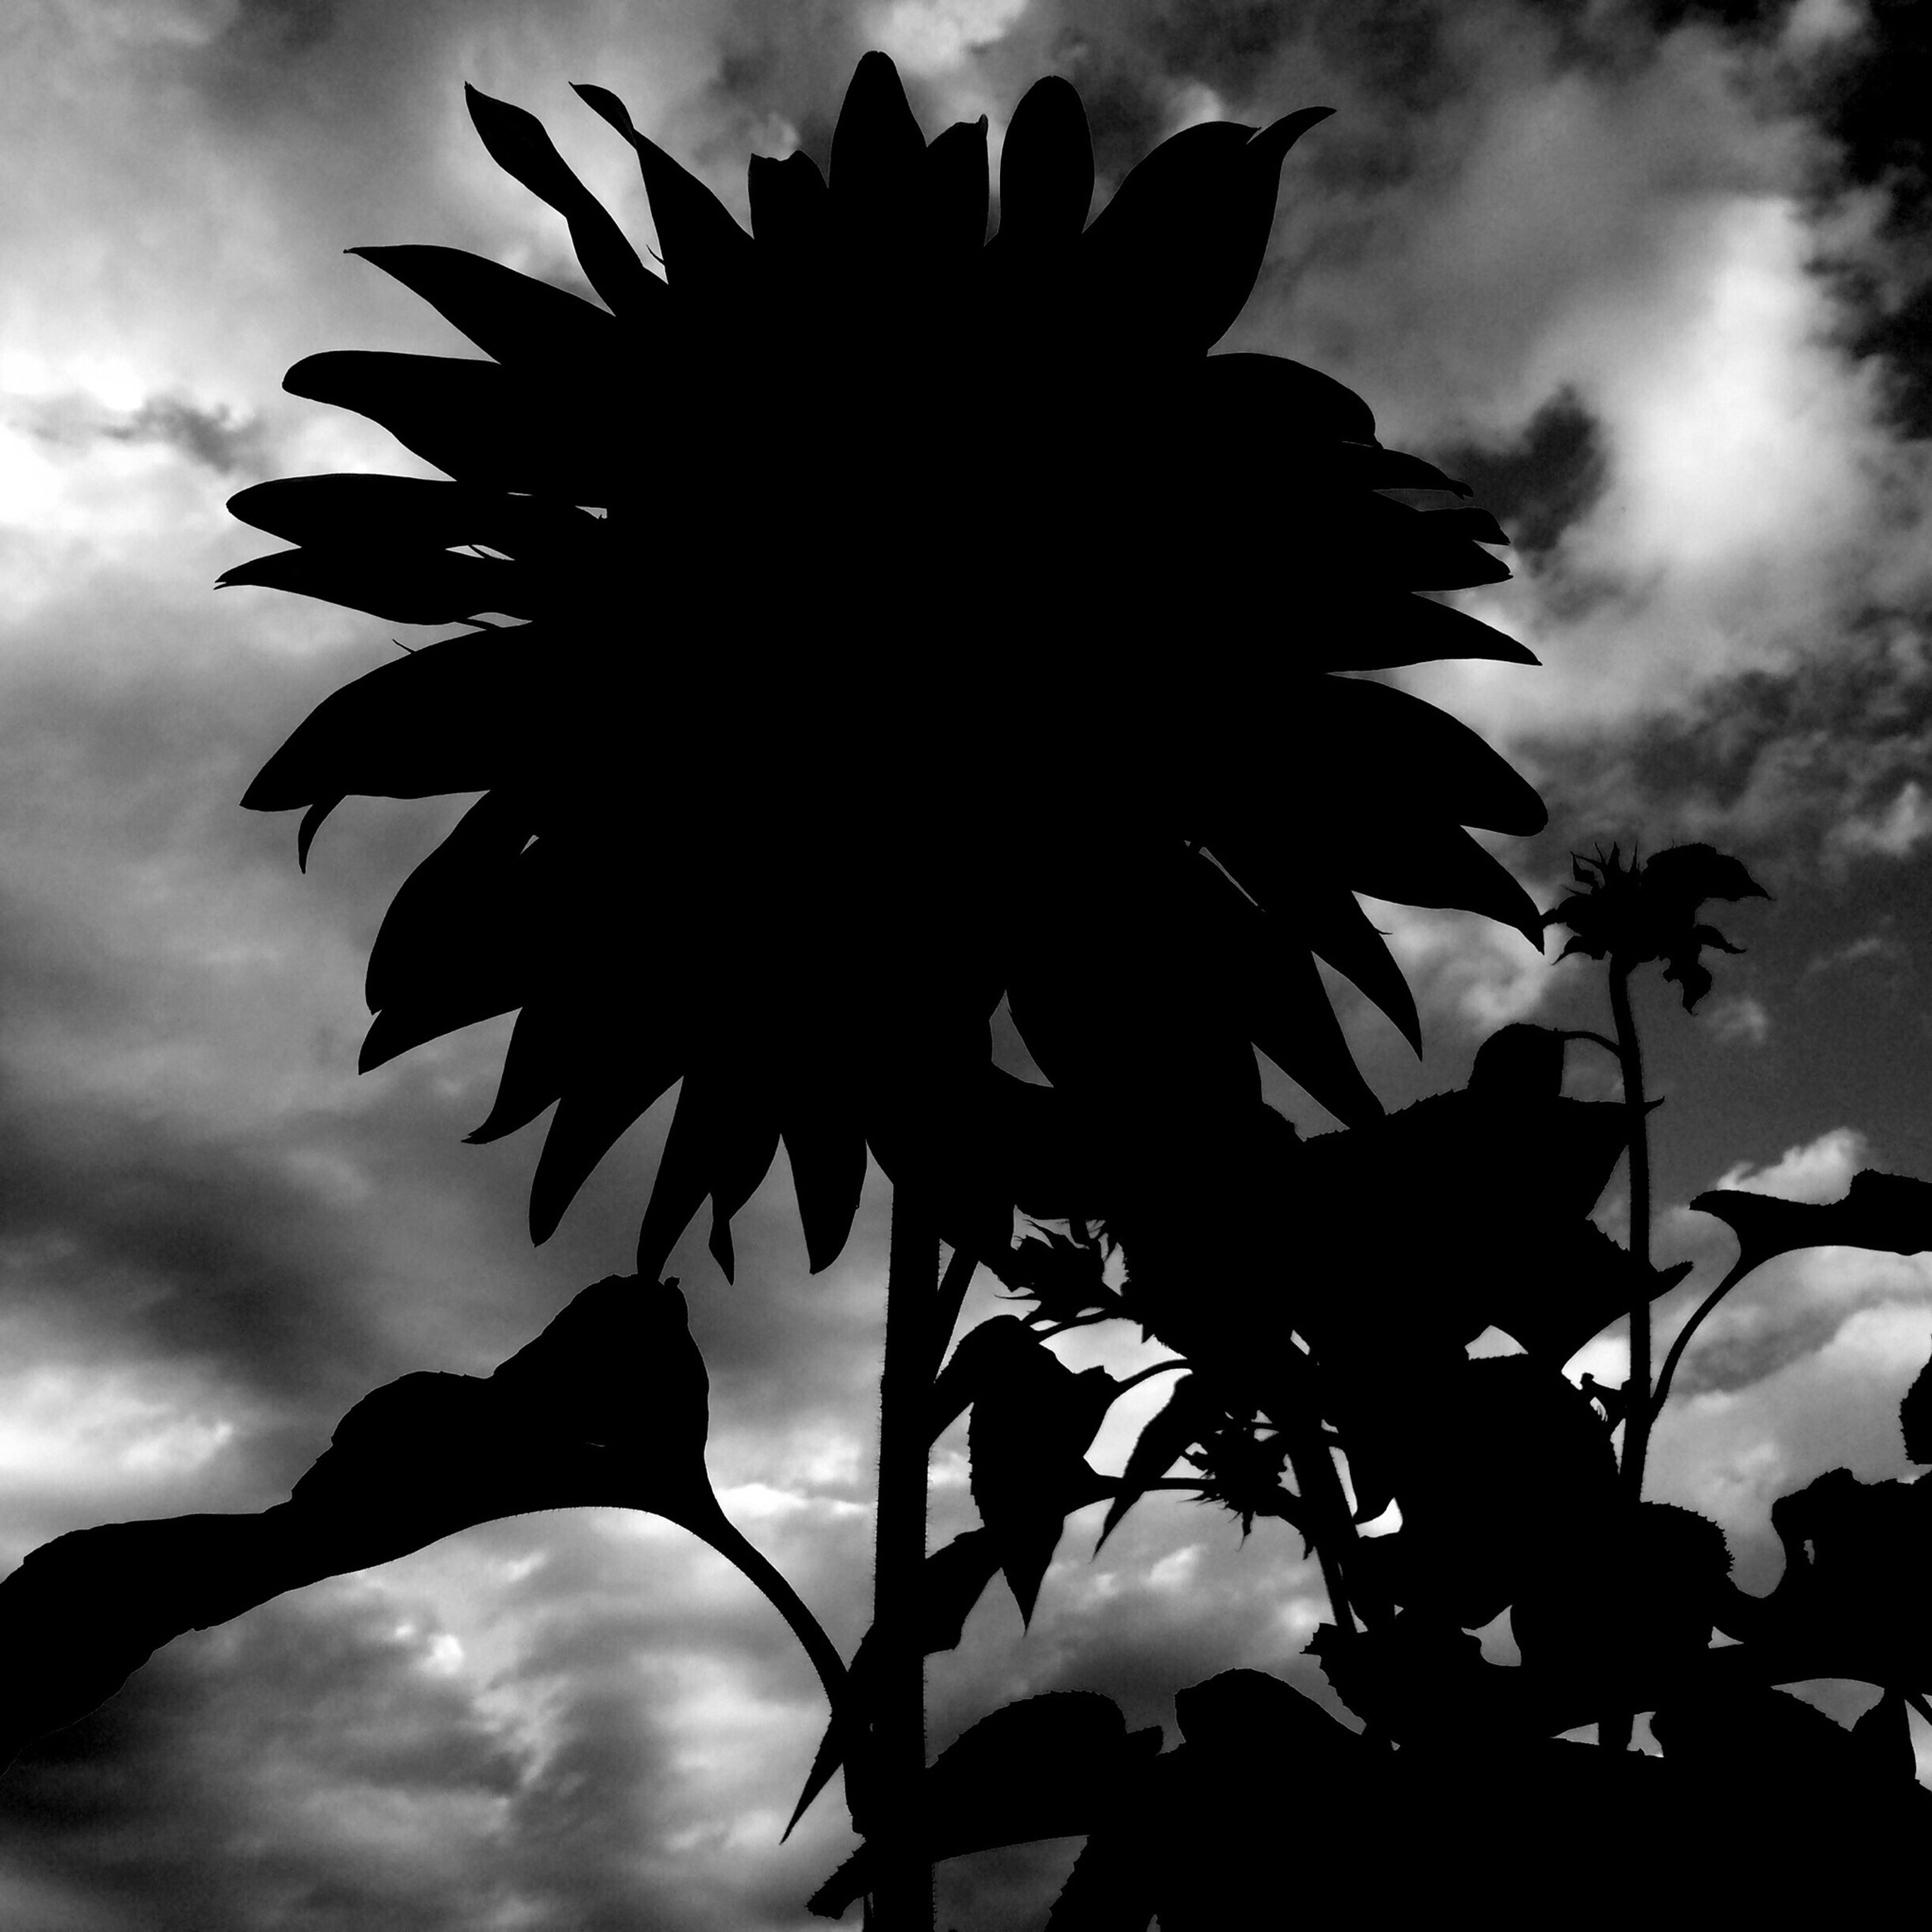 sky, low angle view, growth, cloud - sky, leaf, beauty in nature, nature, cloud, flower, cloudy, silhouette, plant, tree, tranquility, close-up, fragility, outdoors, freshness, no people, day